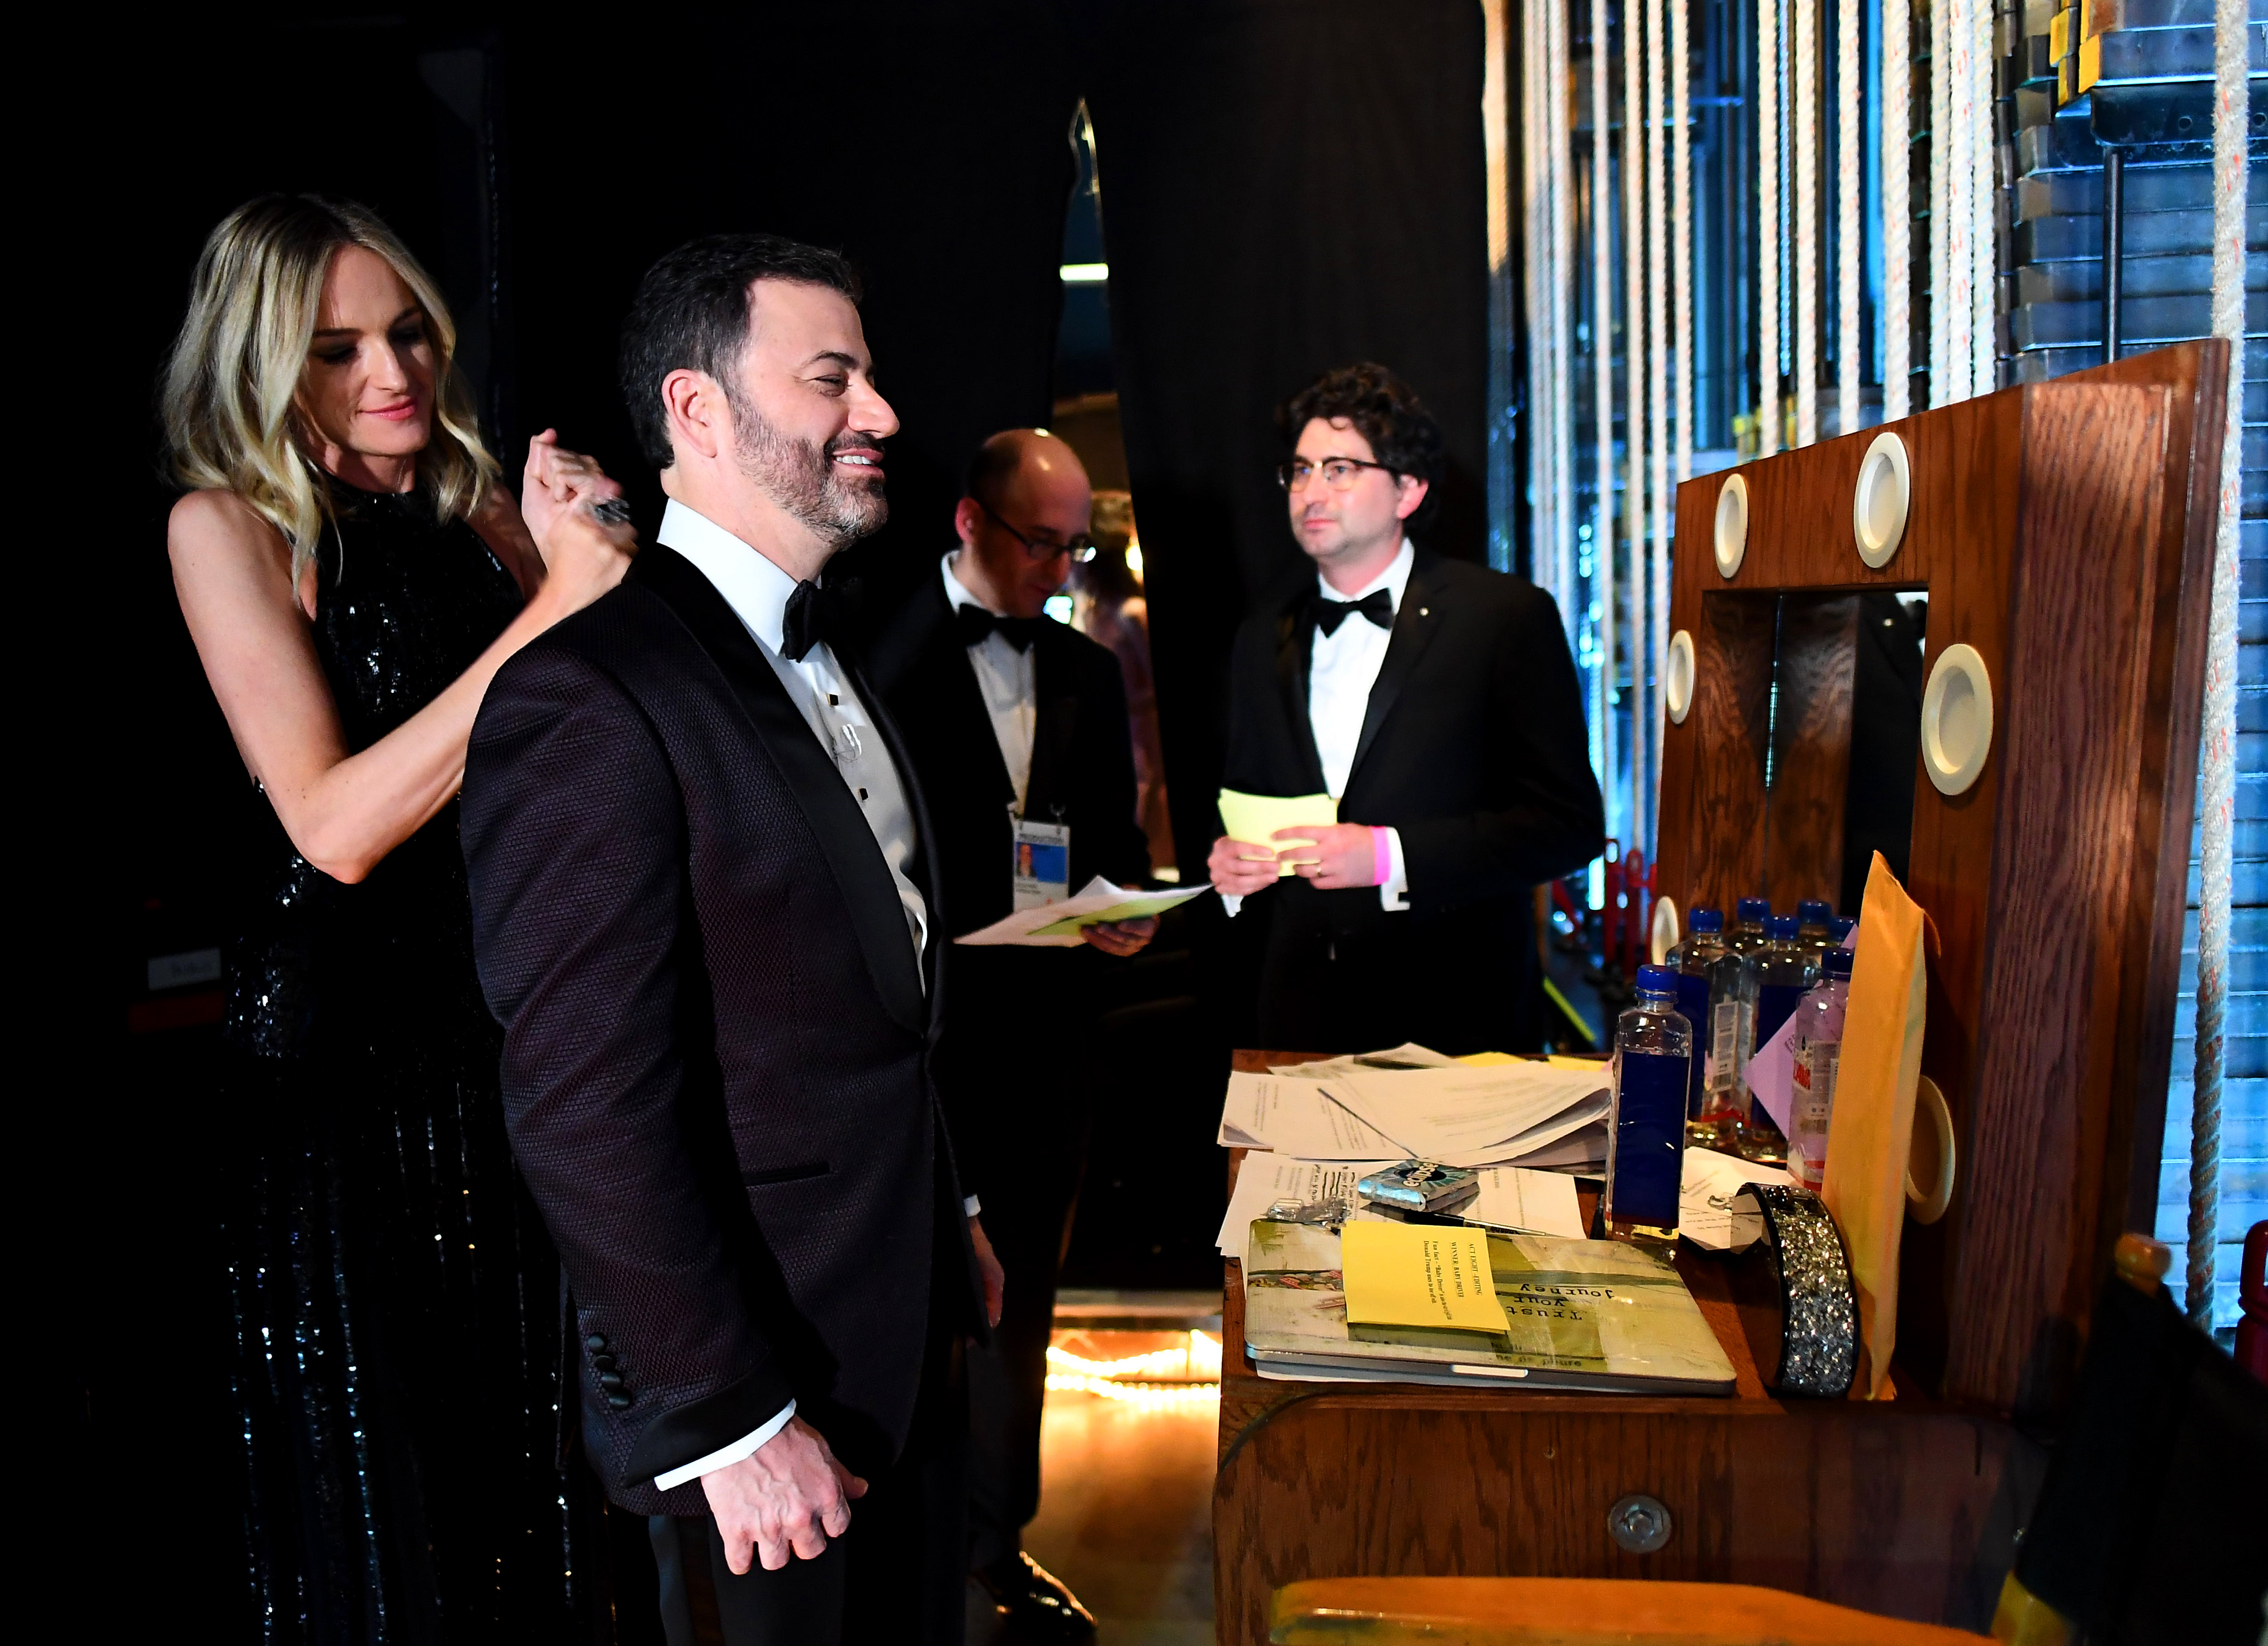 Jimmy Kimmel Producers Behind The Scenes Secrets Of His Second Oscars Indiewire